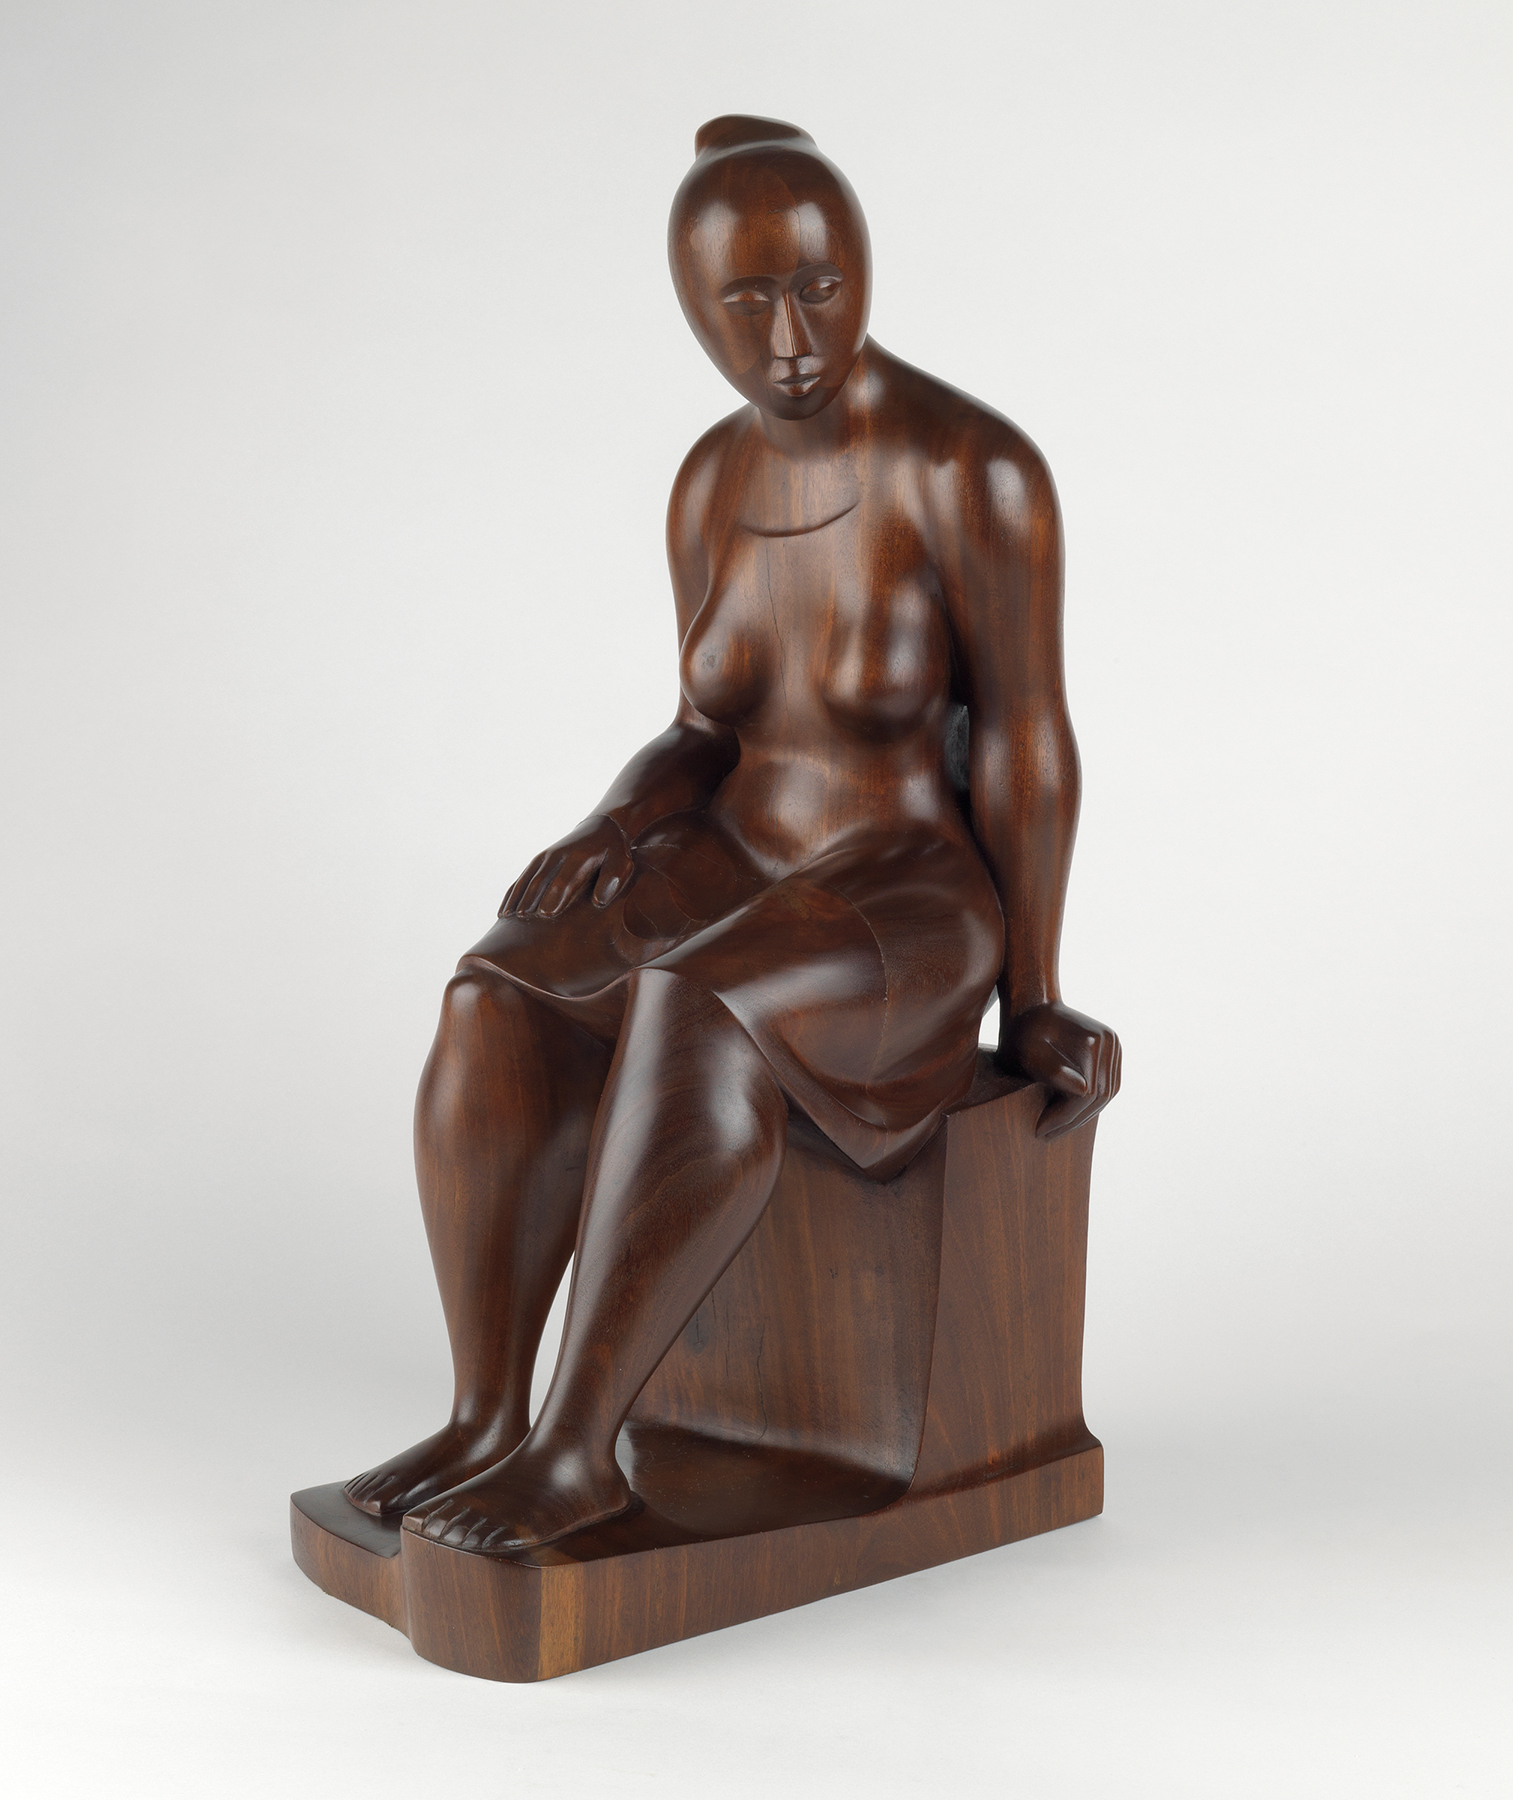 Elizabeth Catlett Sculpture Sells for $389,000 at New York Auction, New Record for the Trailblazing Artist